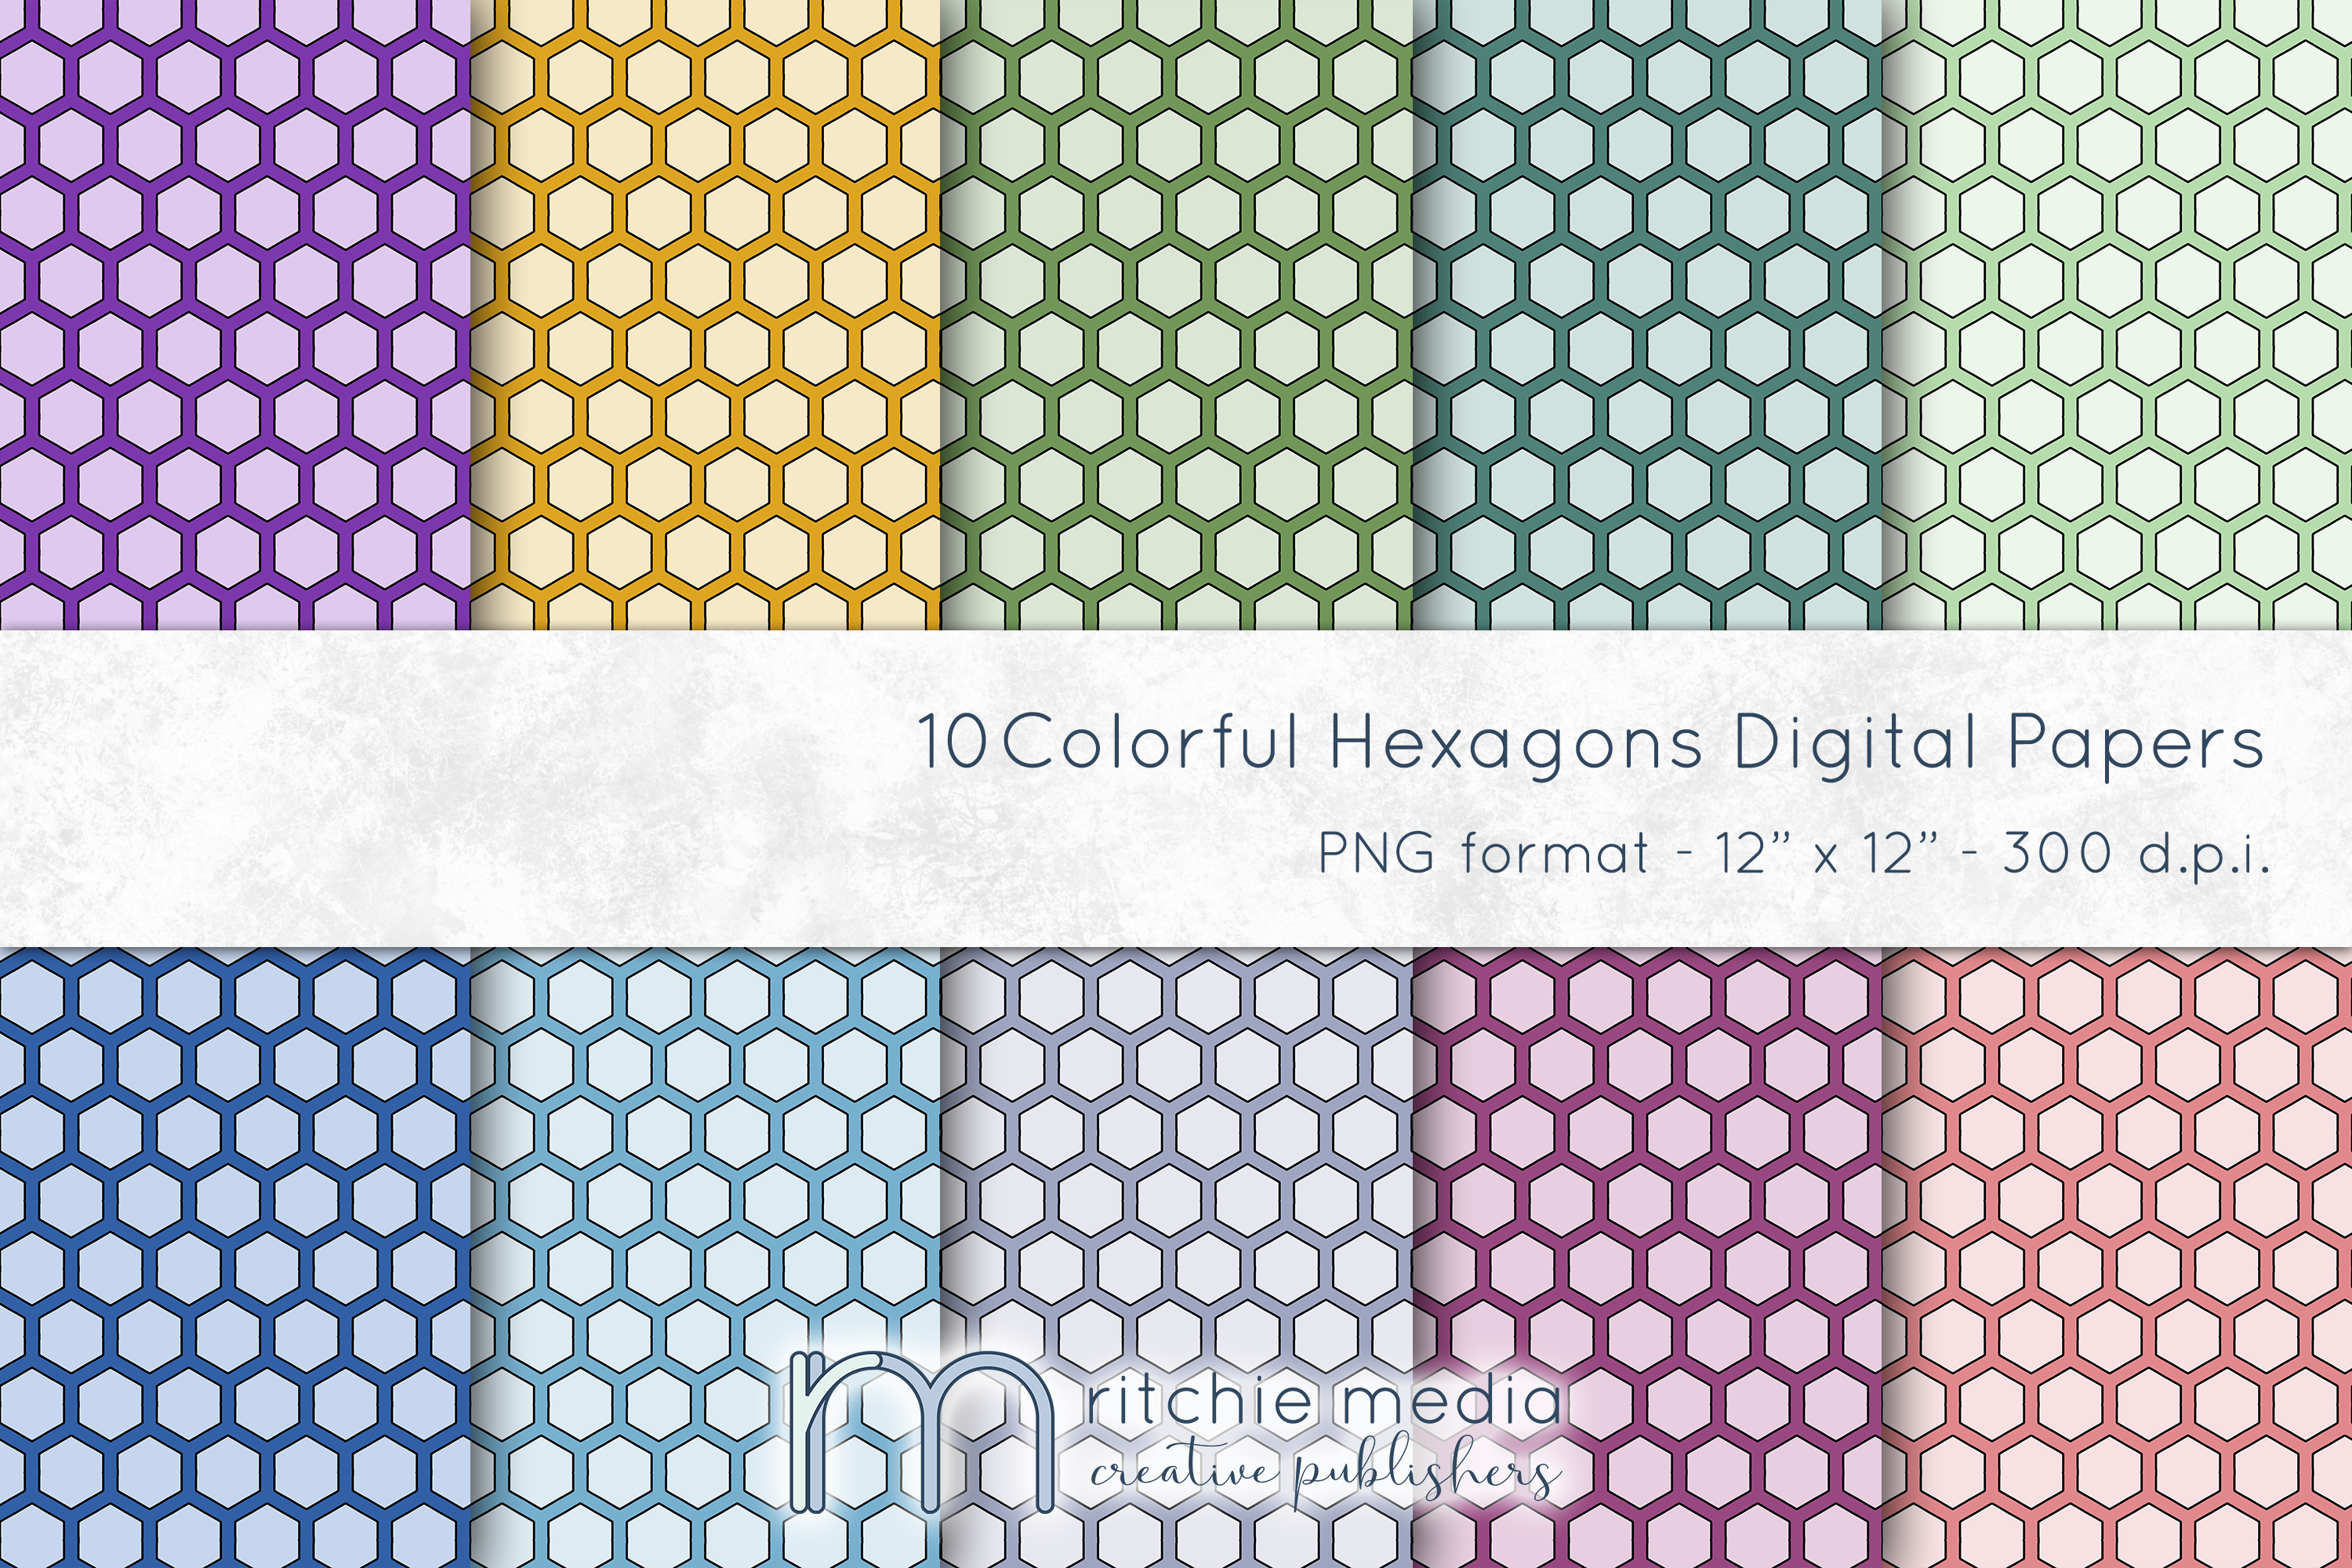 colorful hexagon digital papers